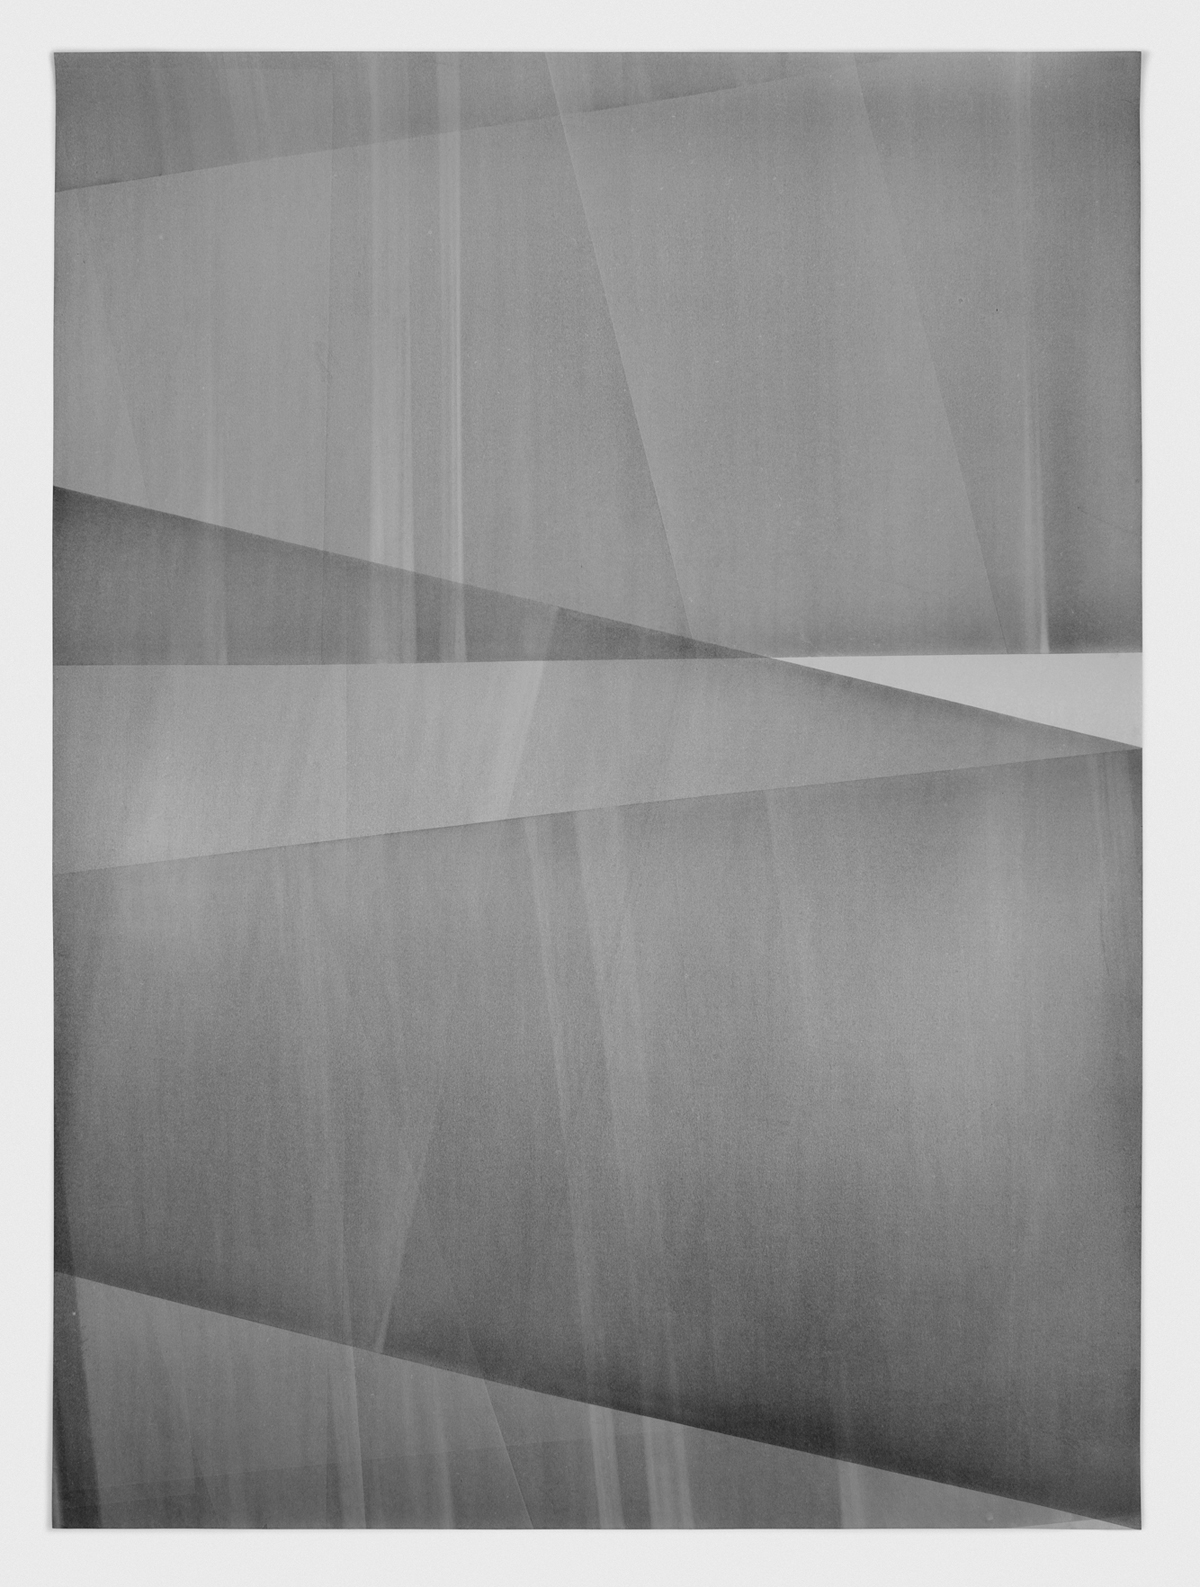 Untitled (layered, from the ongoing series reflected/repeated)   2015, Oil based ink painted onto newsprint. 38 x 50 inches (unframed)